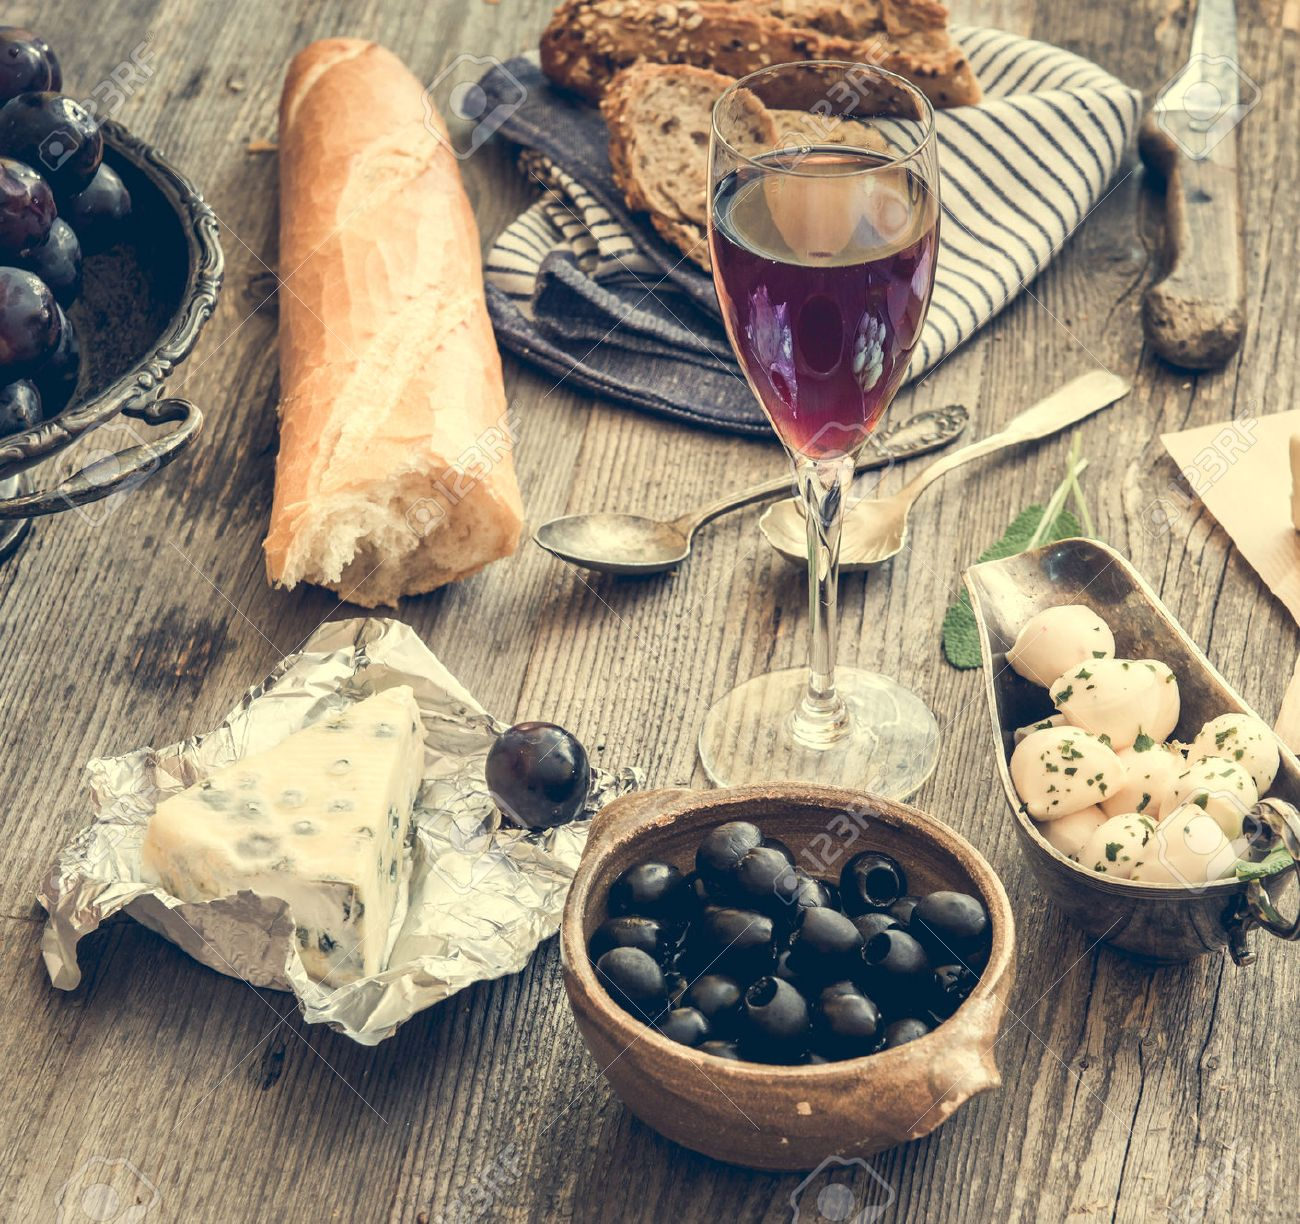 French cuisine. Different types of cheese, wine and other ingredients on a wooden table - 40314290